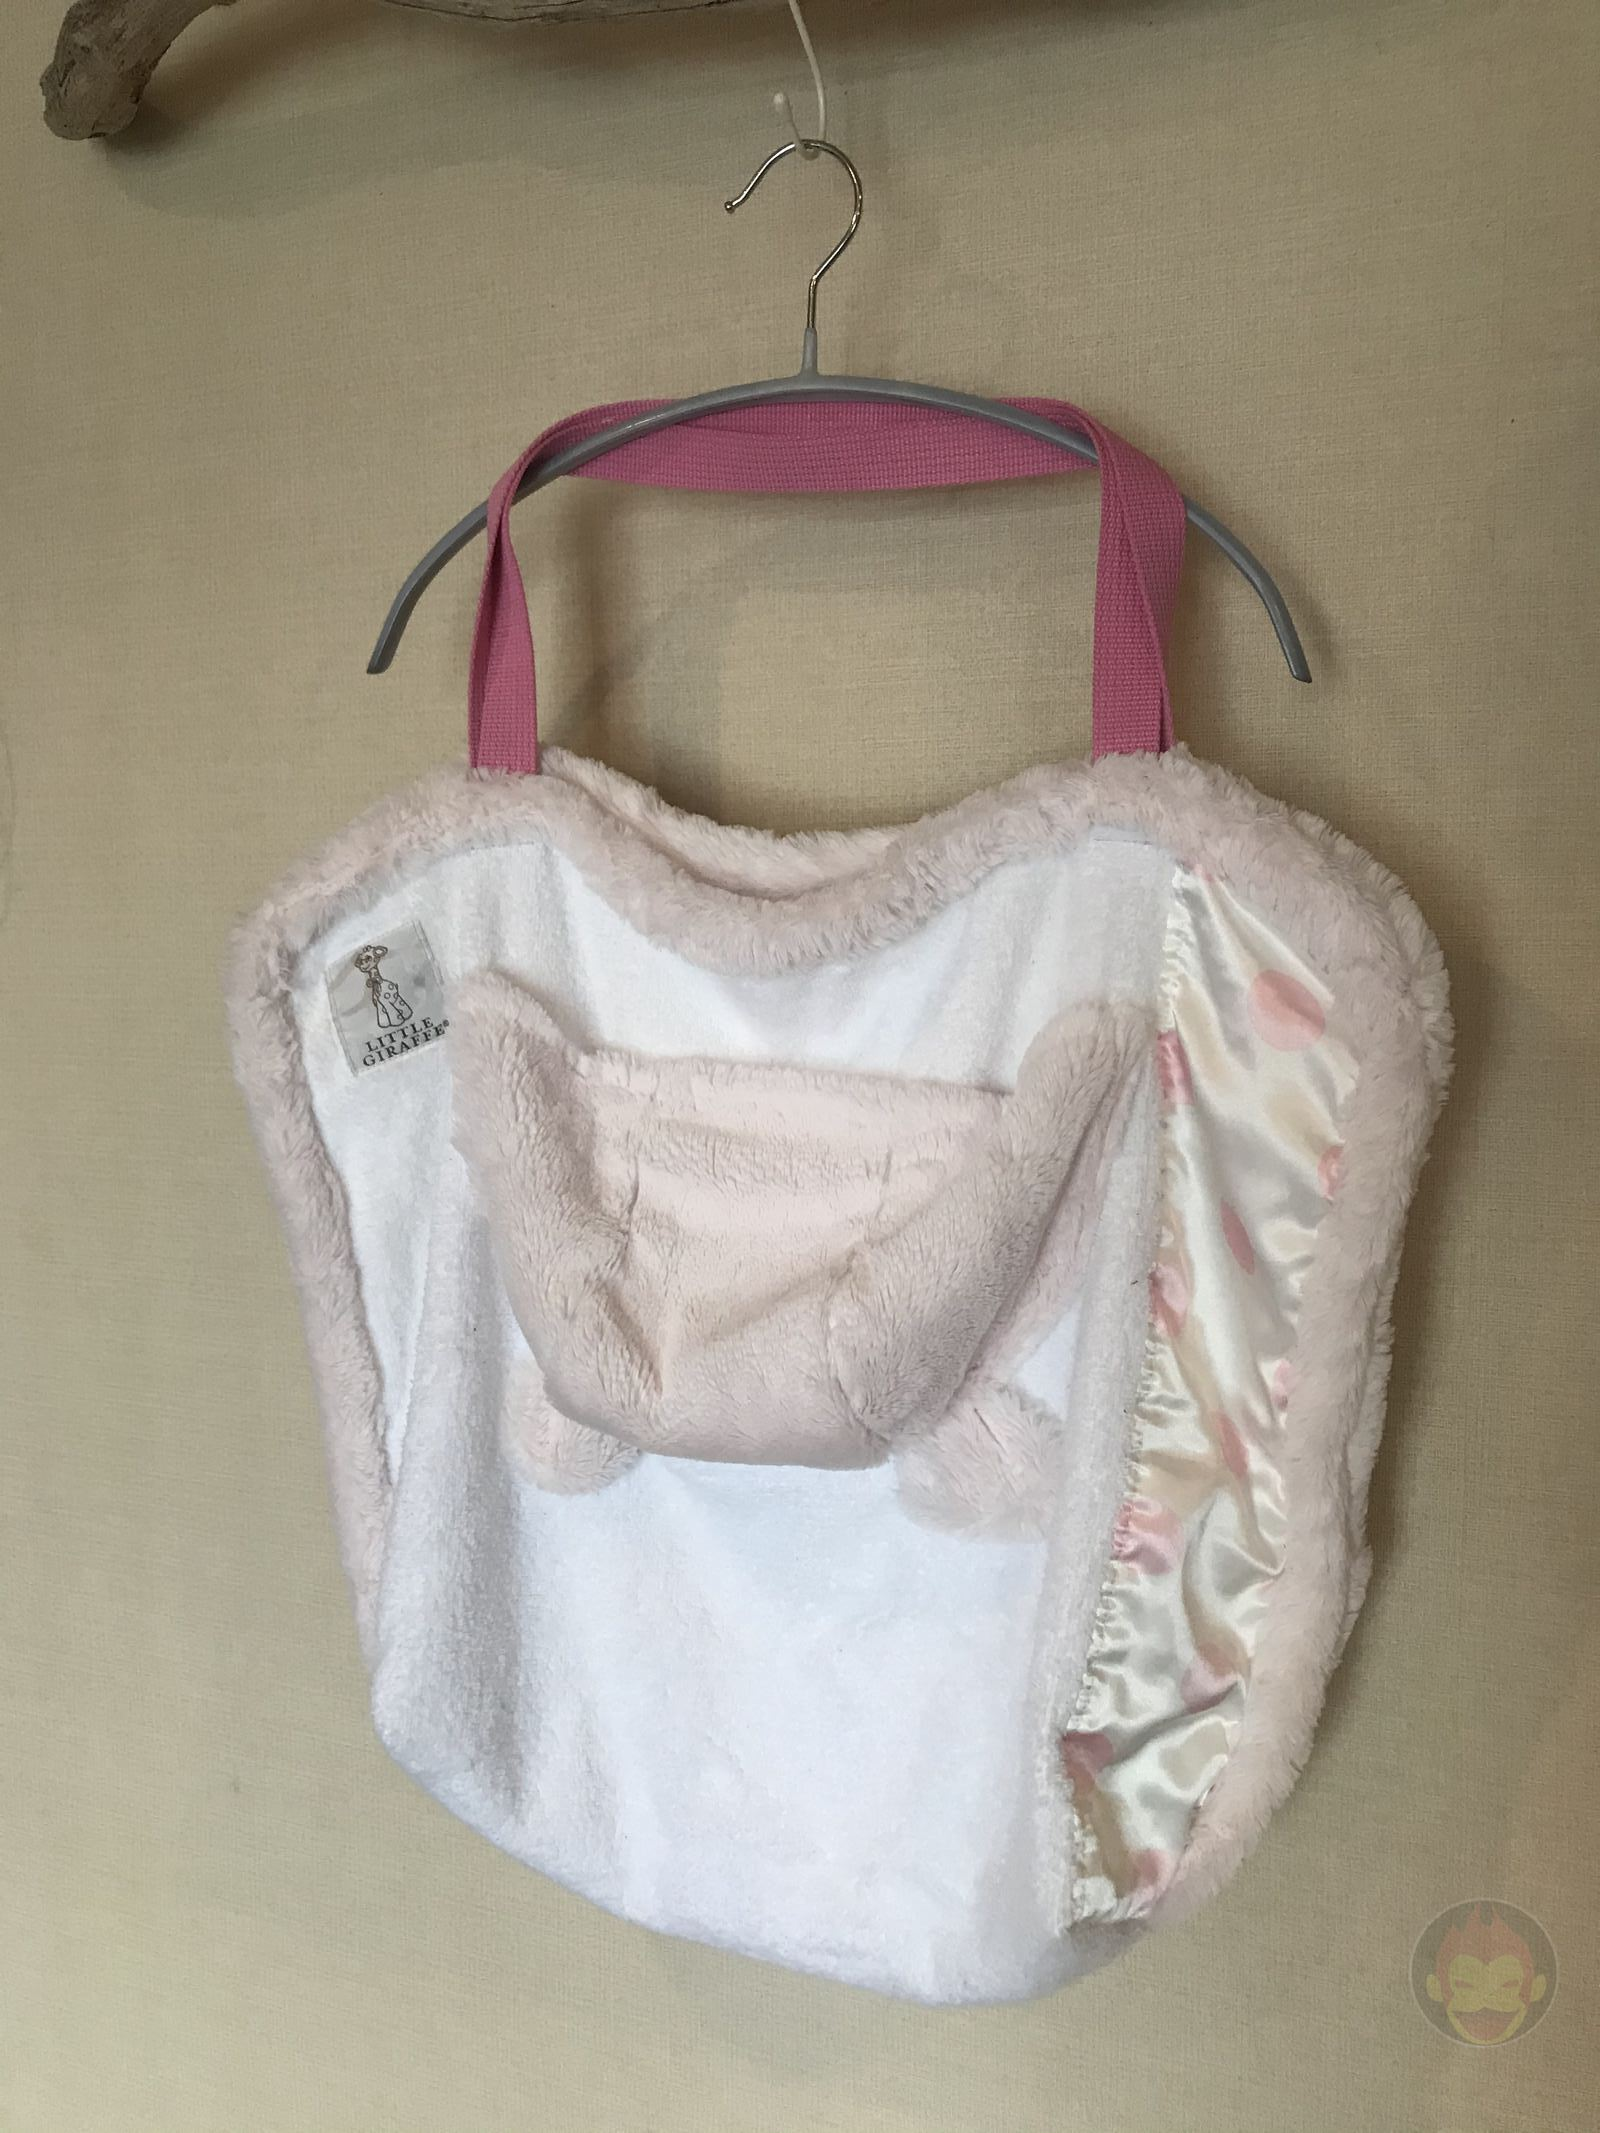 Baby Clothes remade into new items 17